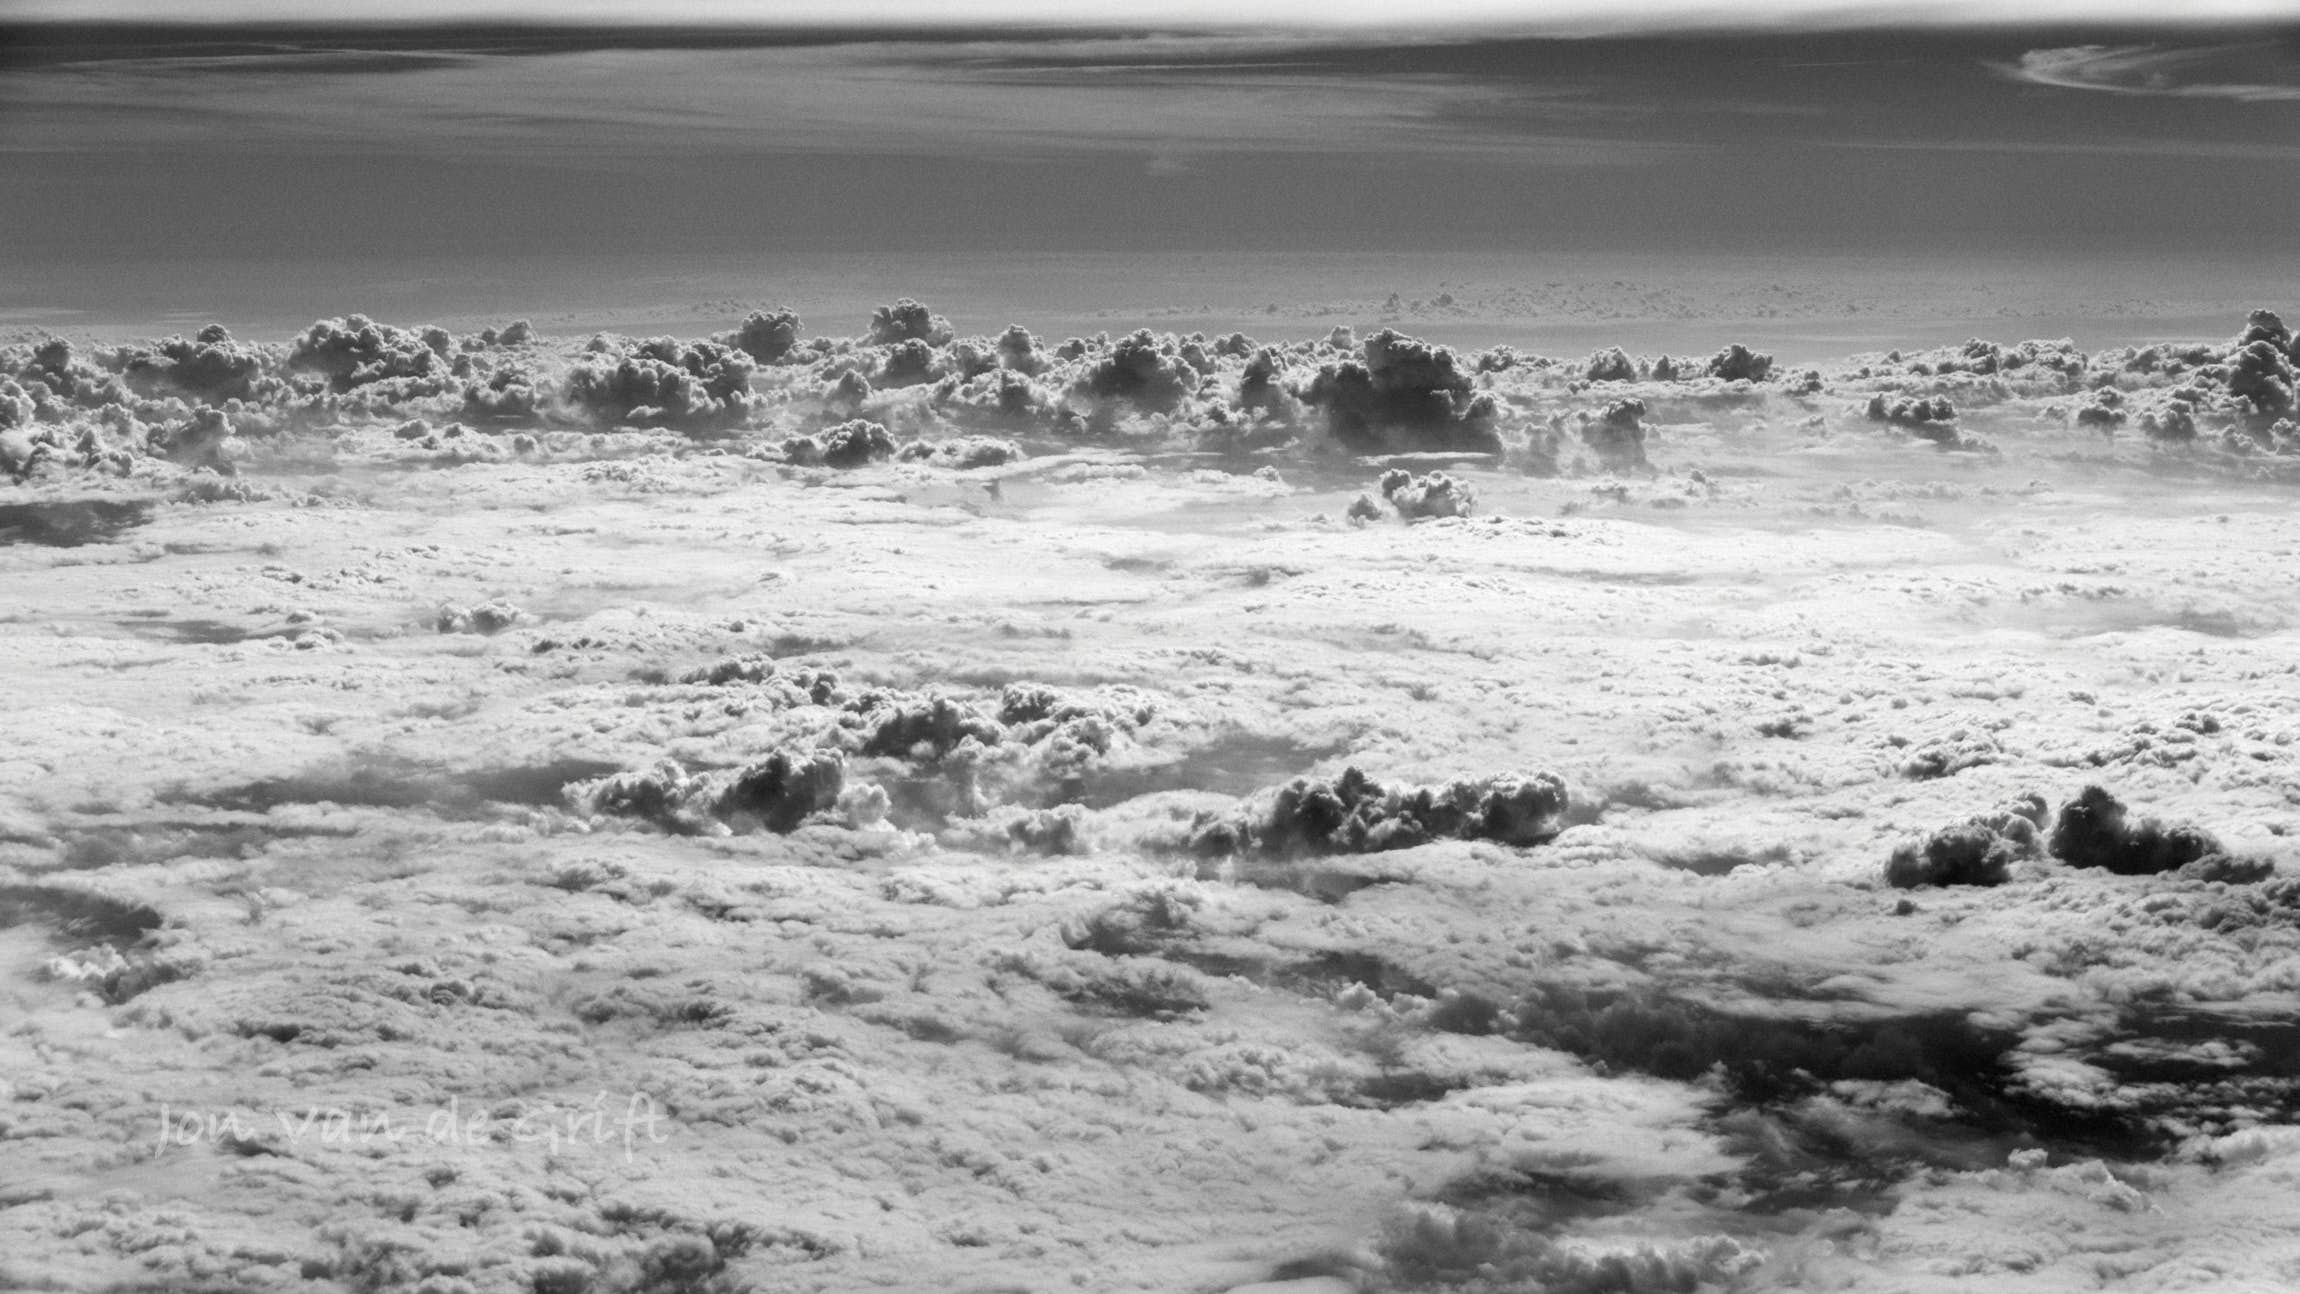 Aerial photograph of cumulus clouds captured in black and white.